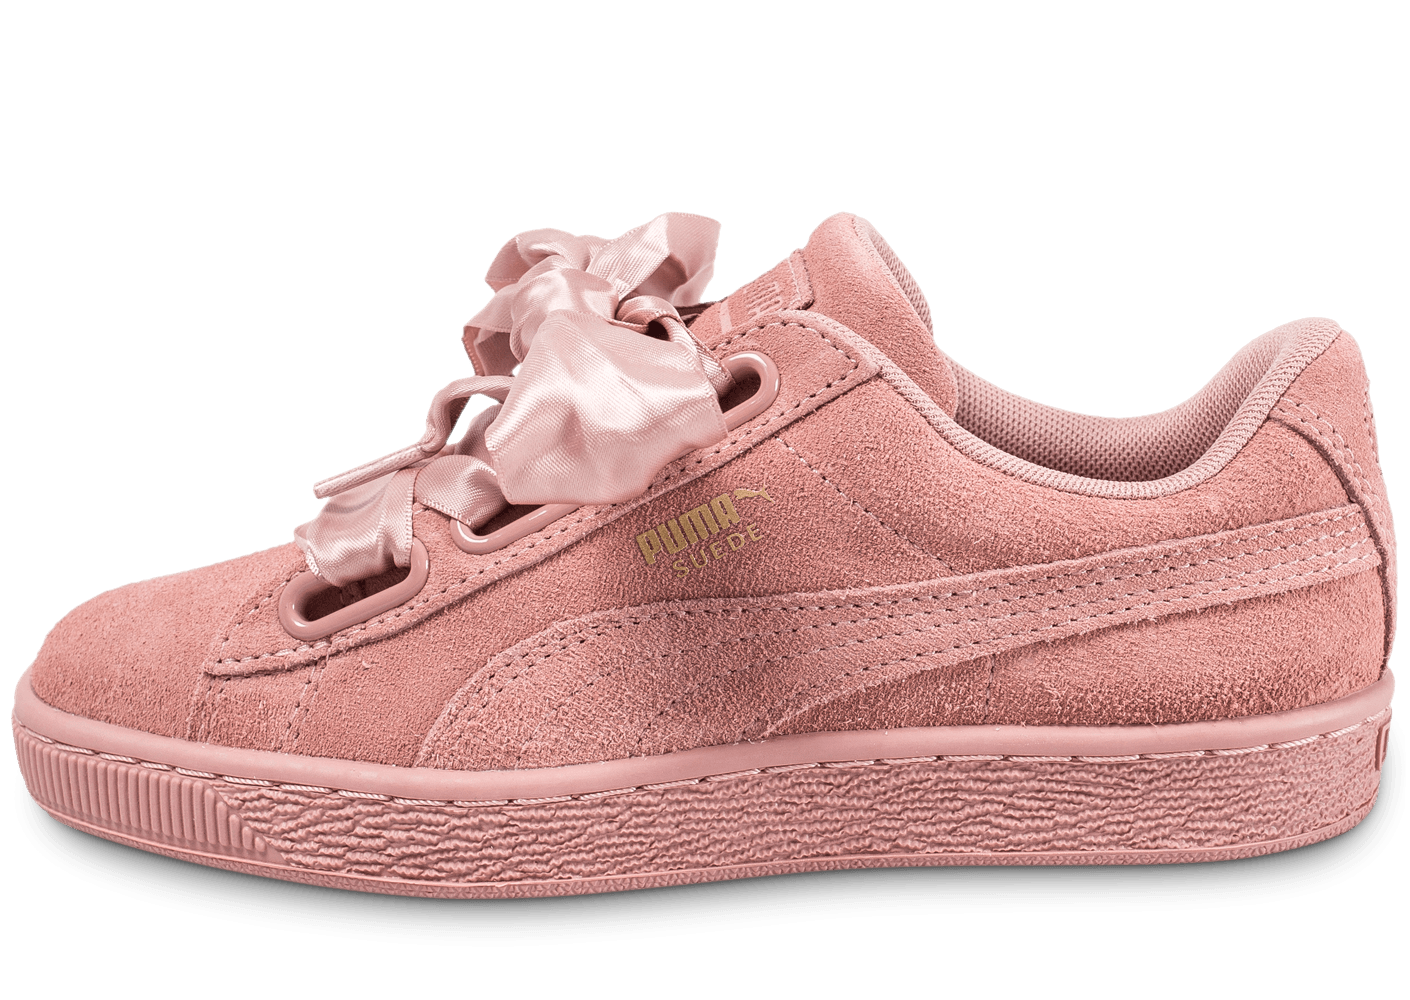 puma suede heart satin ii rose chaussures black friday chausport. Black Bedroom Furniture Sets. Home Design Ideas